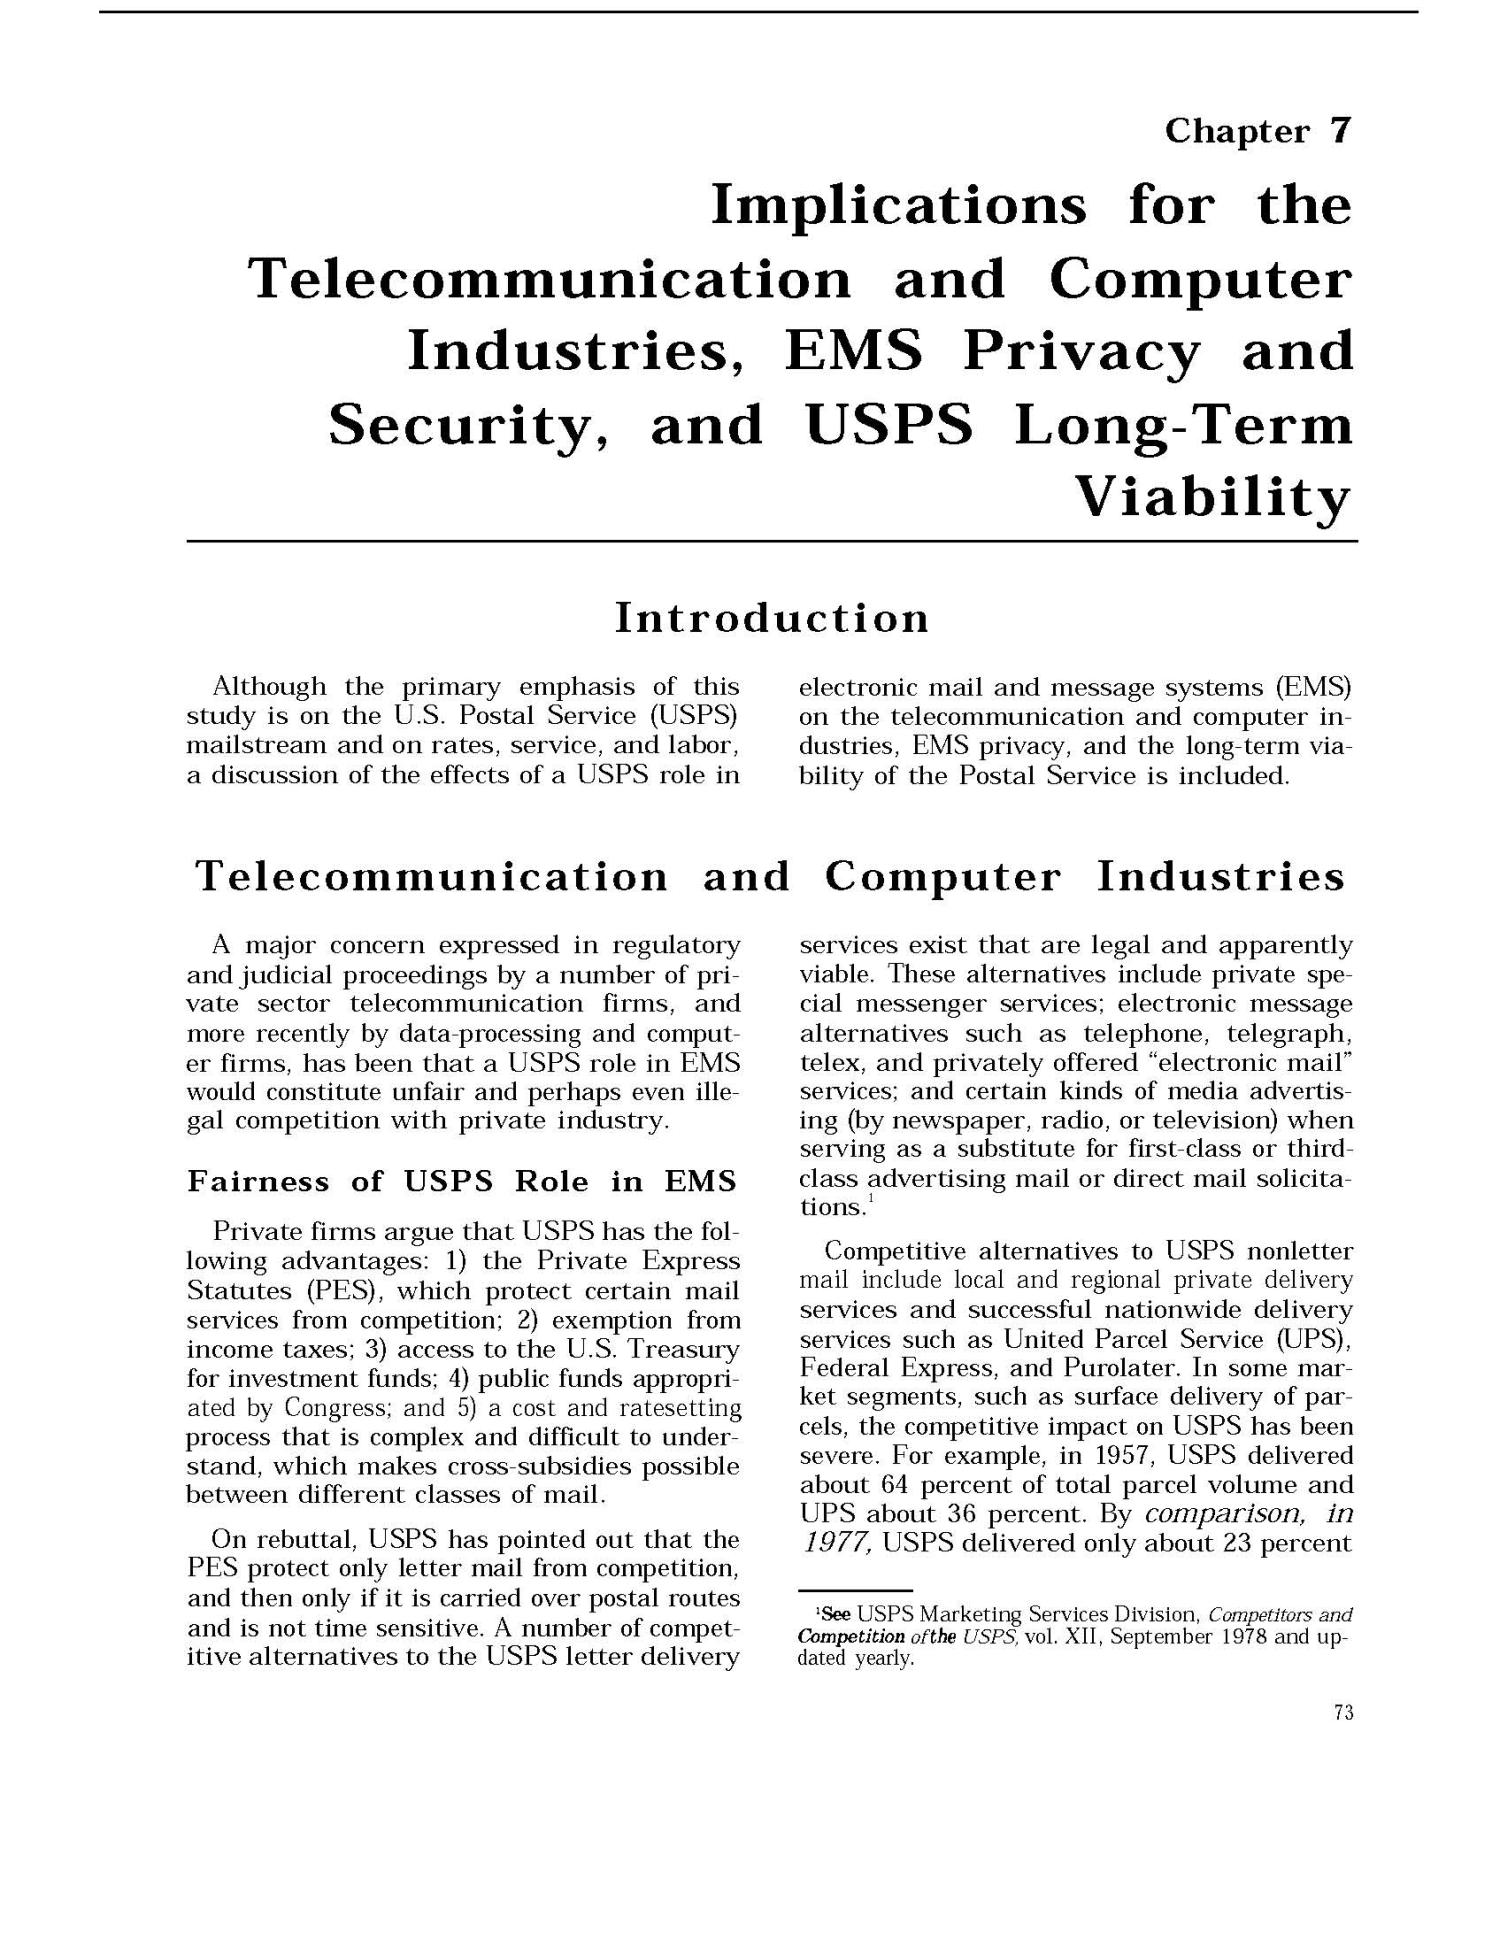 Implications of Electronic Mail and Message Systems for the U.S. Postal Service                                                                                                      73